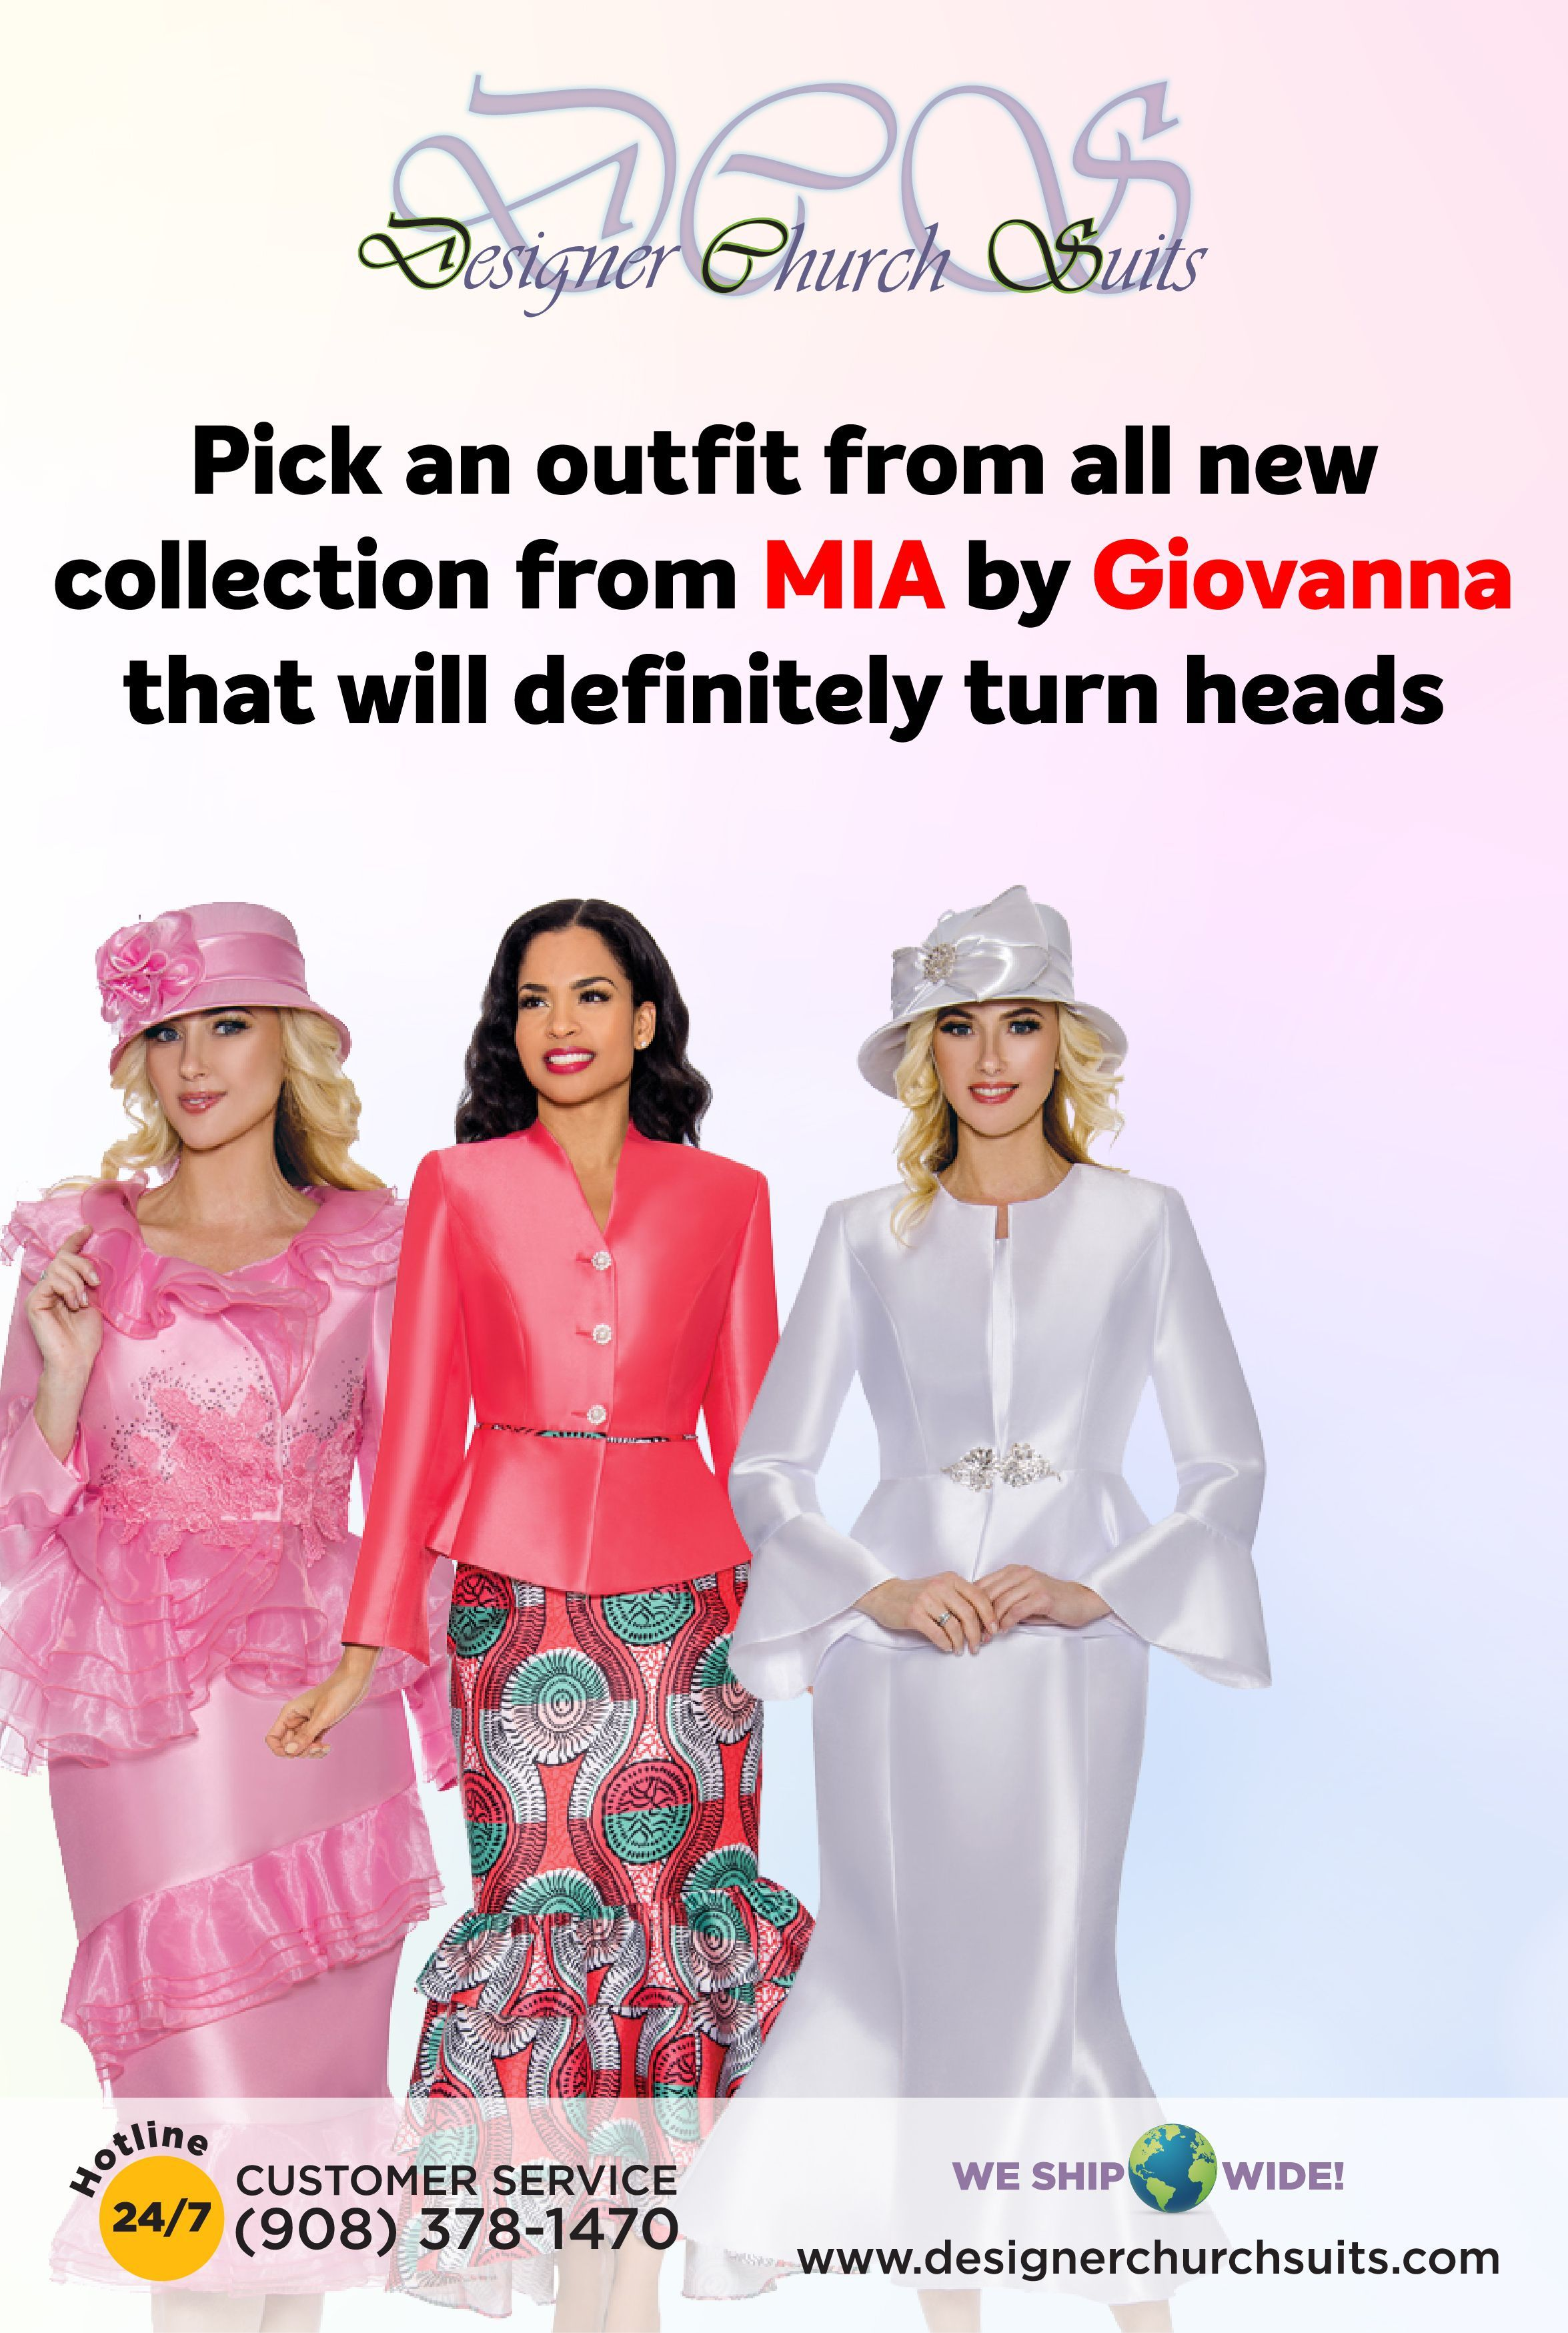 f49534fc49e Church Outfits · Pick an outfit from all new collection from MIA by  Giovanna that will definitely turn heads